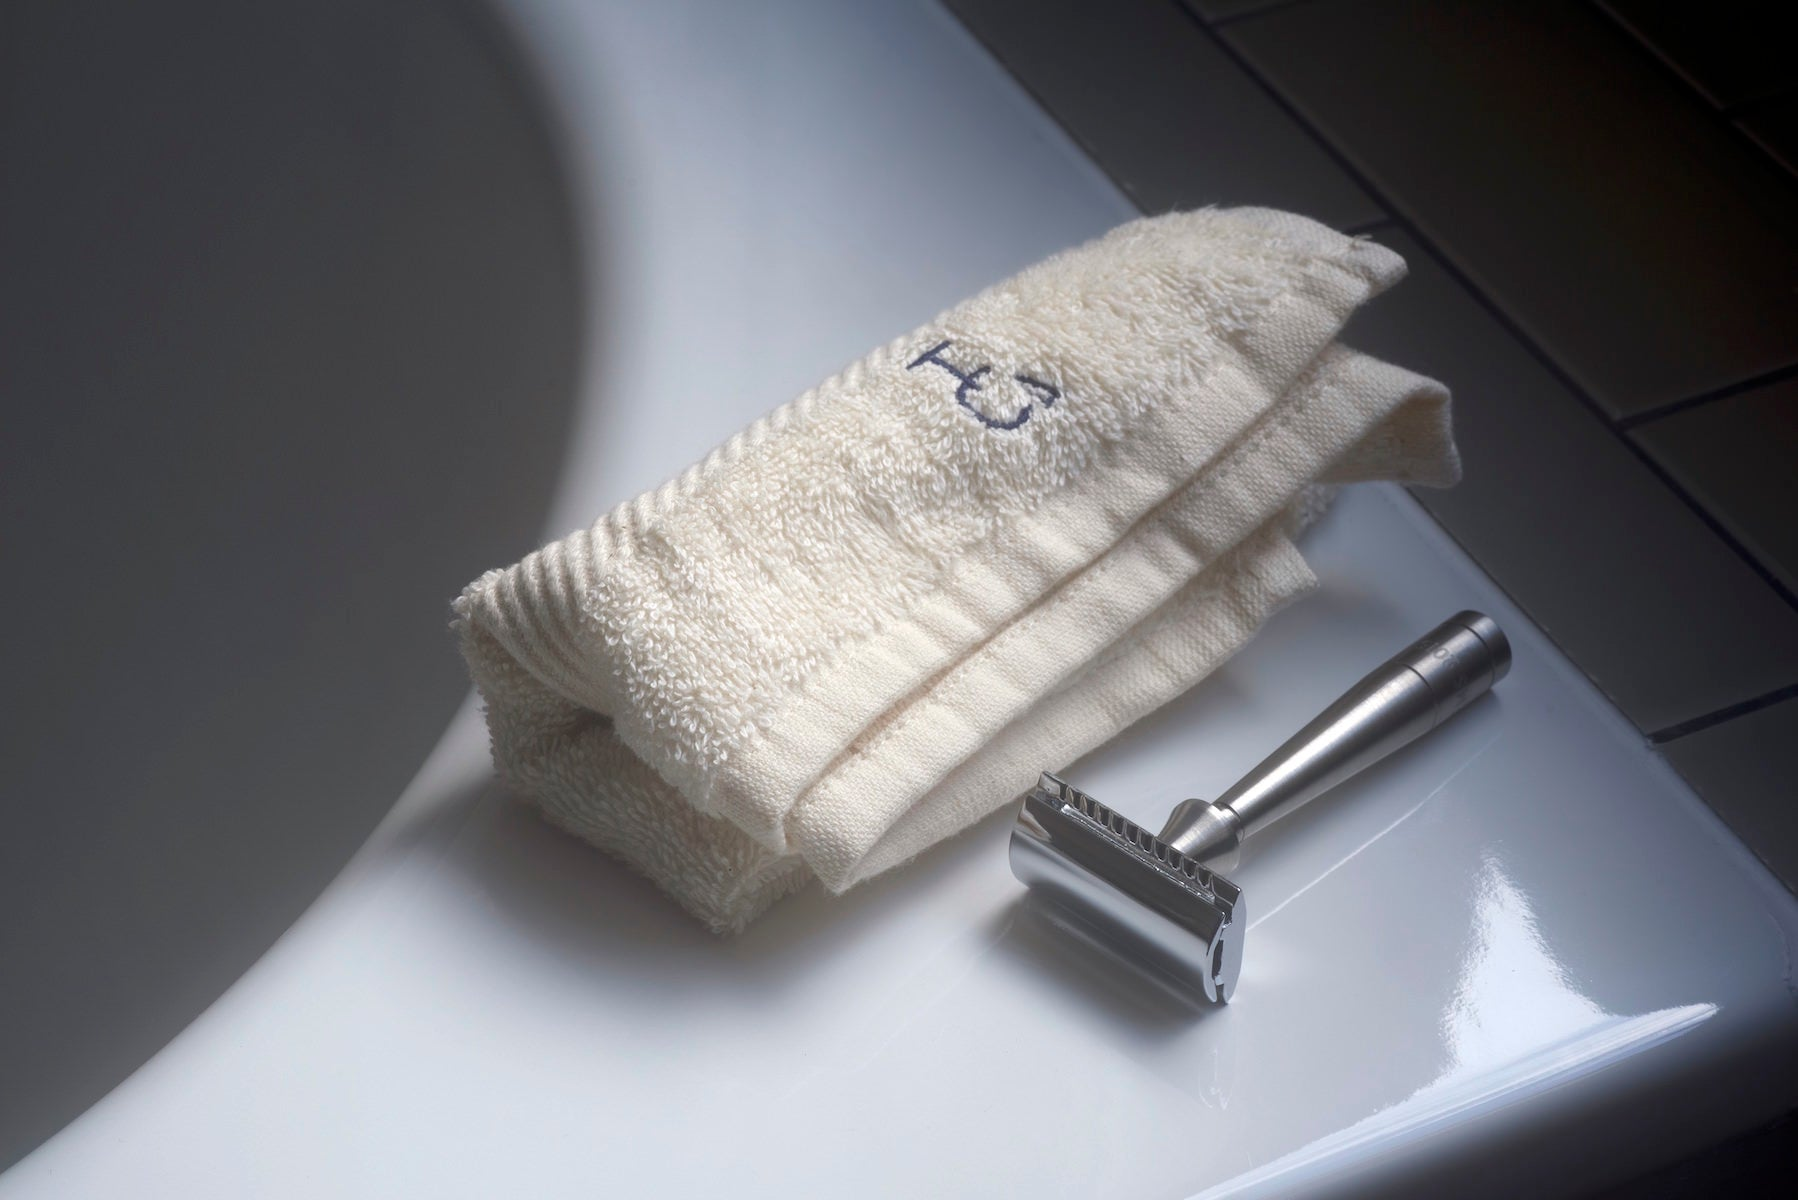 All-metal double-edge safety razor made in Market Harborough, Britain